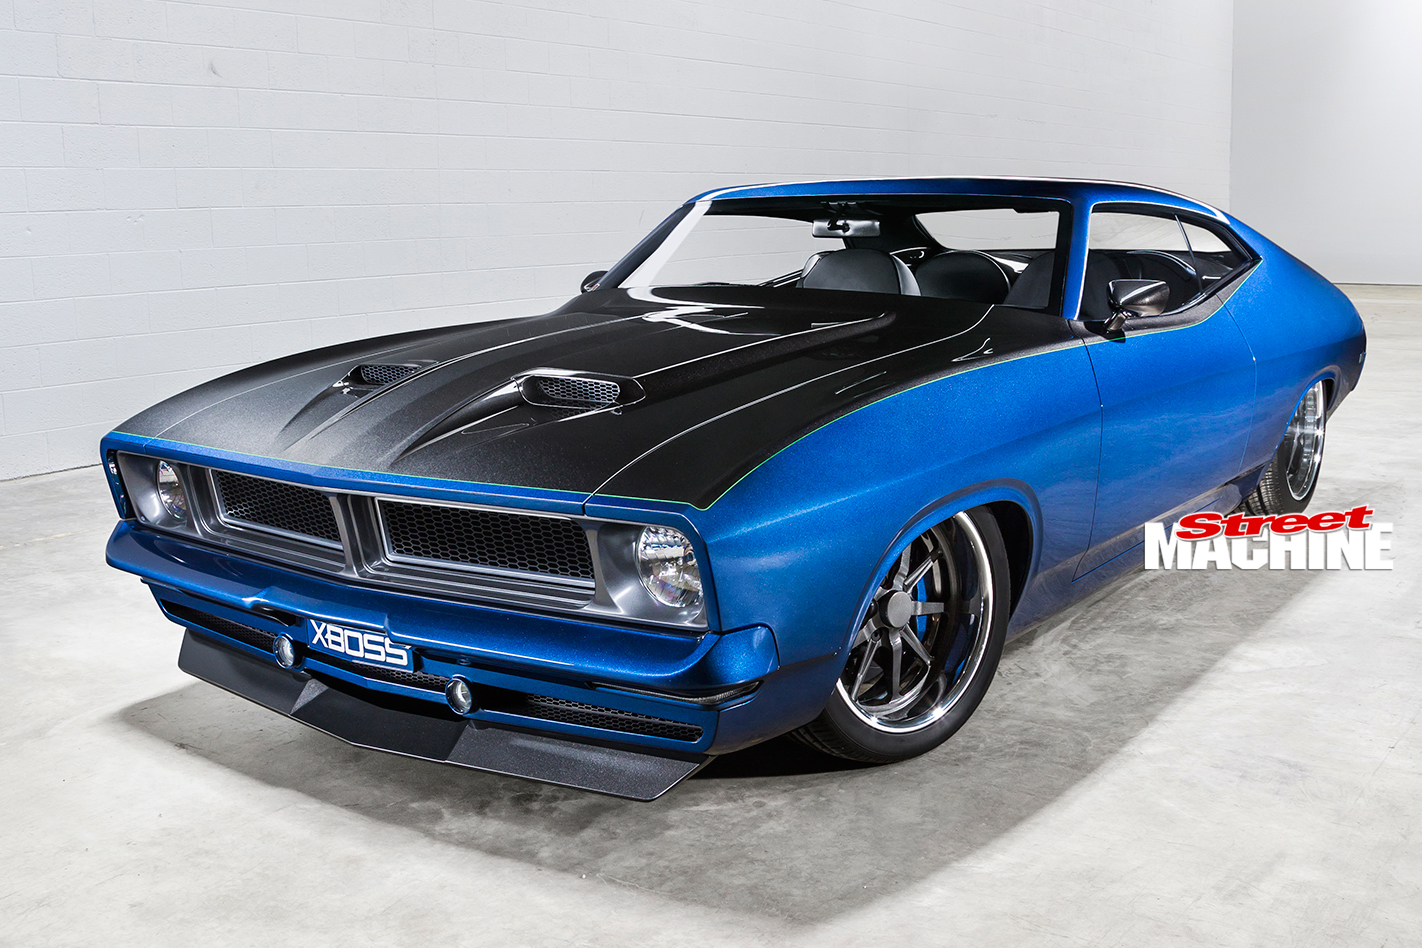 chris bitmead 39 s stunning 1976 ford falcon xb coupe xboss street machine. Black Bedroom Furniture Sets. Home Design Ideas